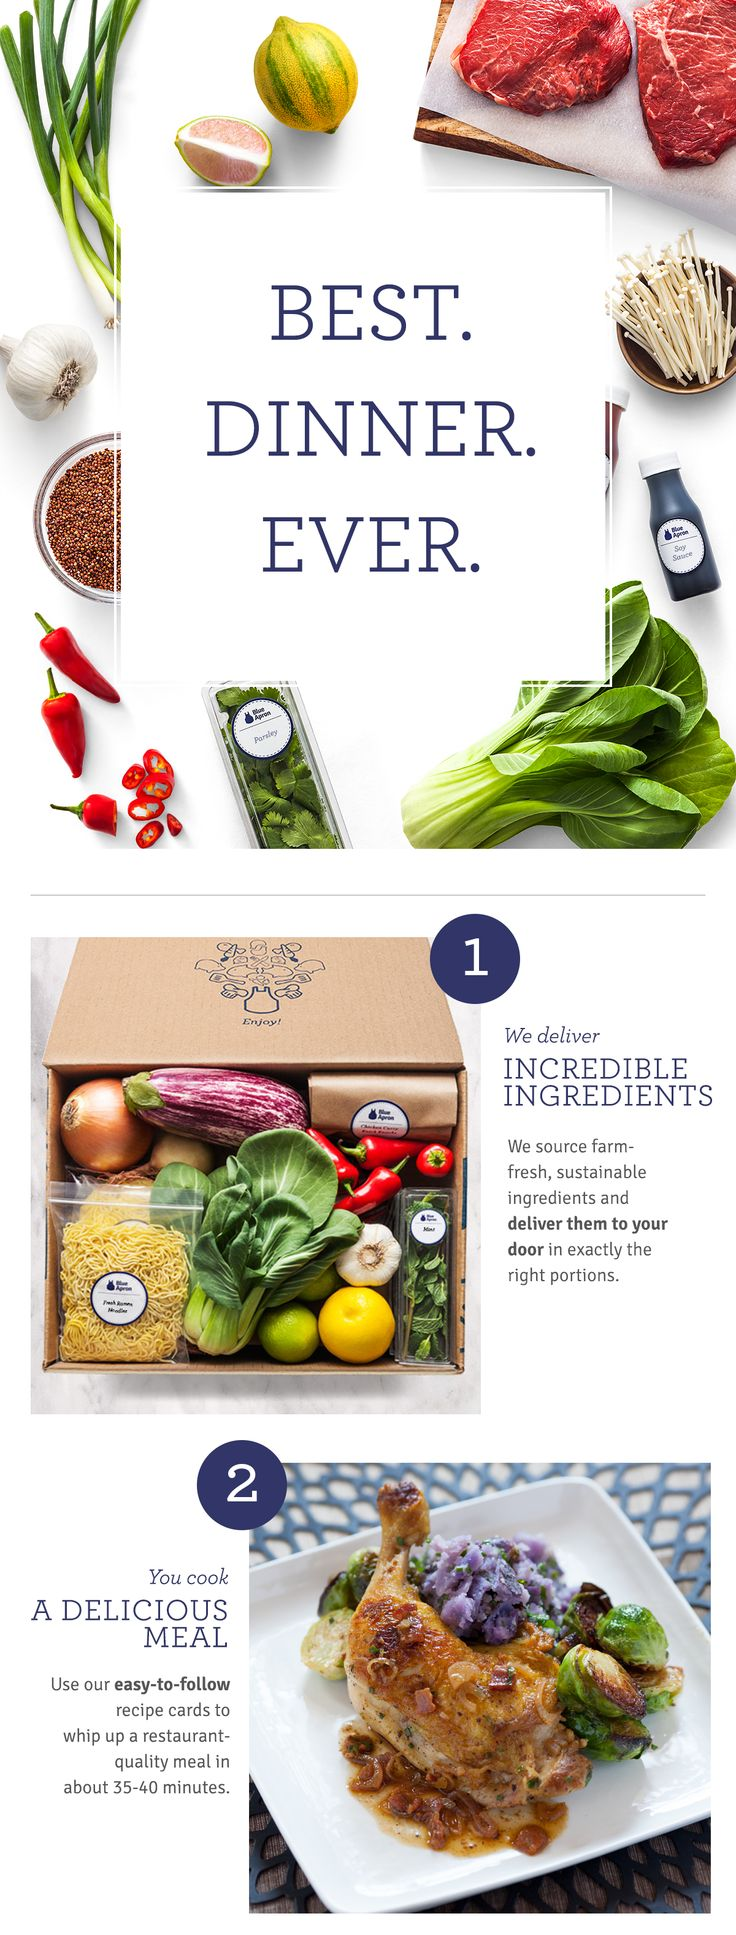 Blue Apron makes it easy to create incredible meals each week with farm-fresh produce & step-by-step recipes. Get $20 off your 1st delivery! http://cook.ba/1qrJSbx